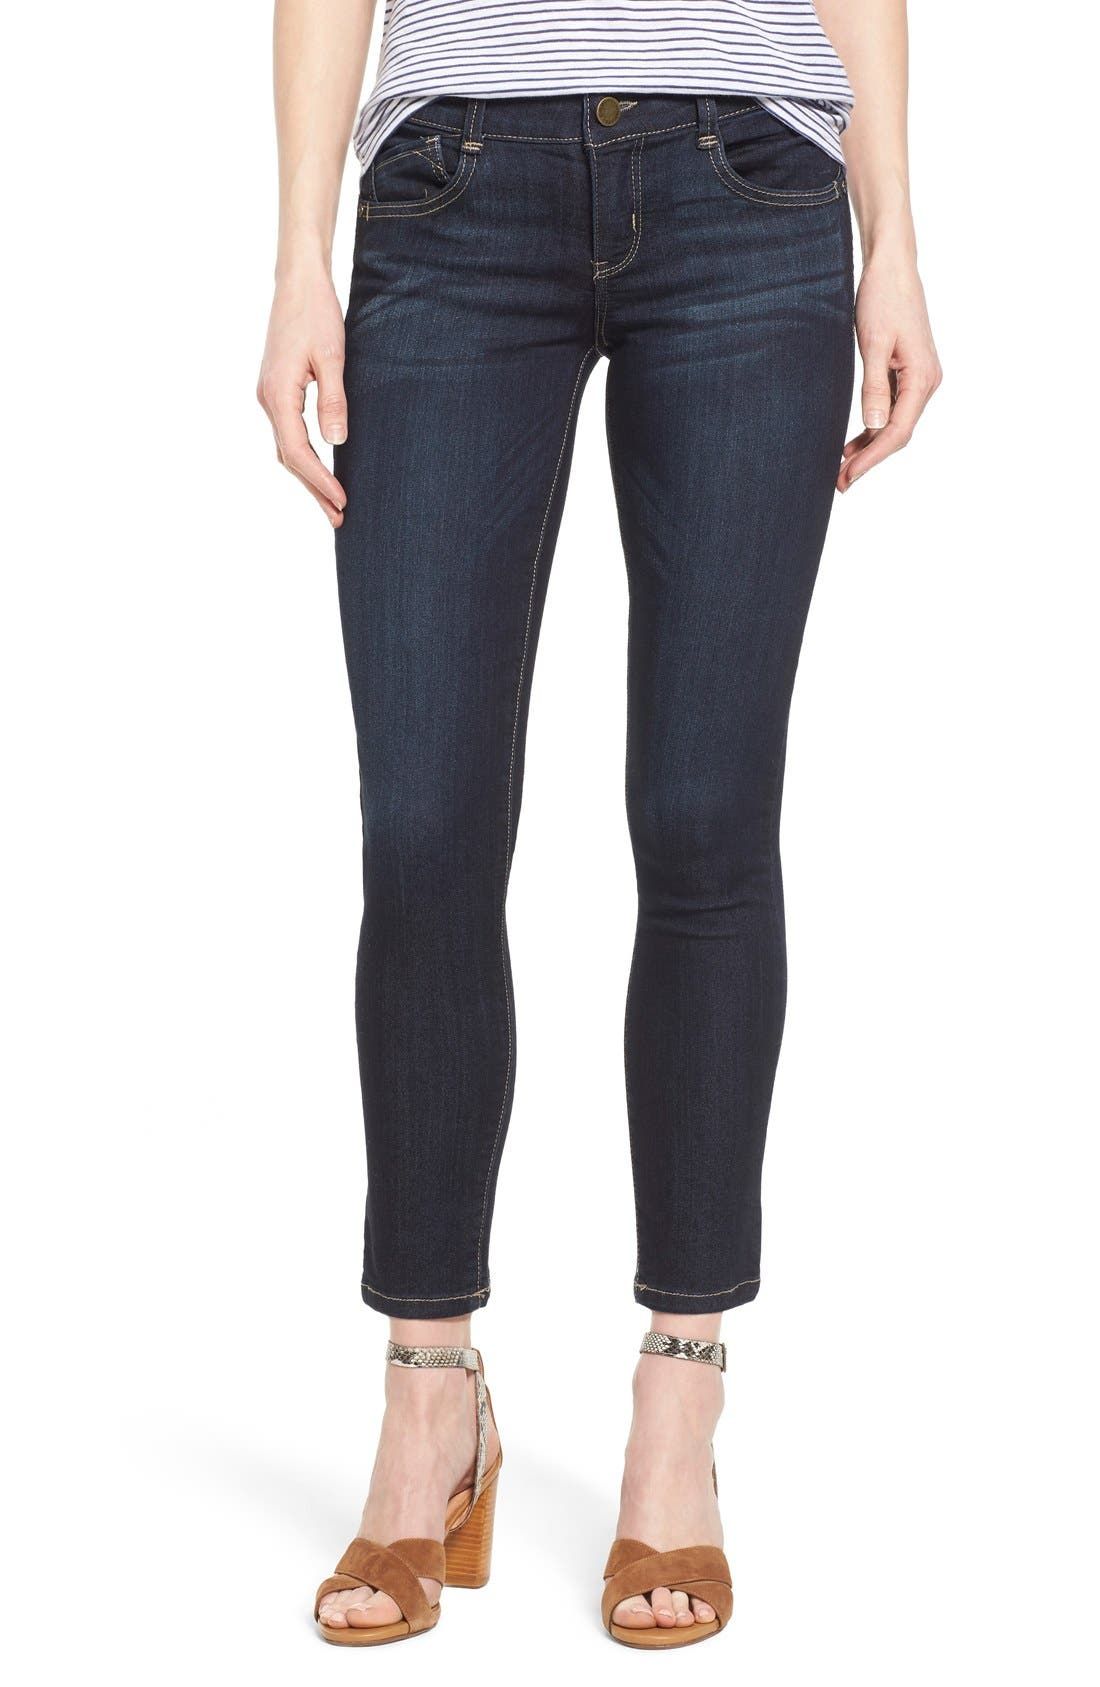 'Ab Solution' Stretch Ankle Skinny Jeans,                             Main thumbnail 1, color,